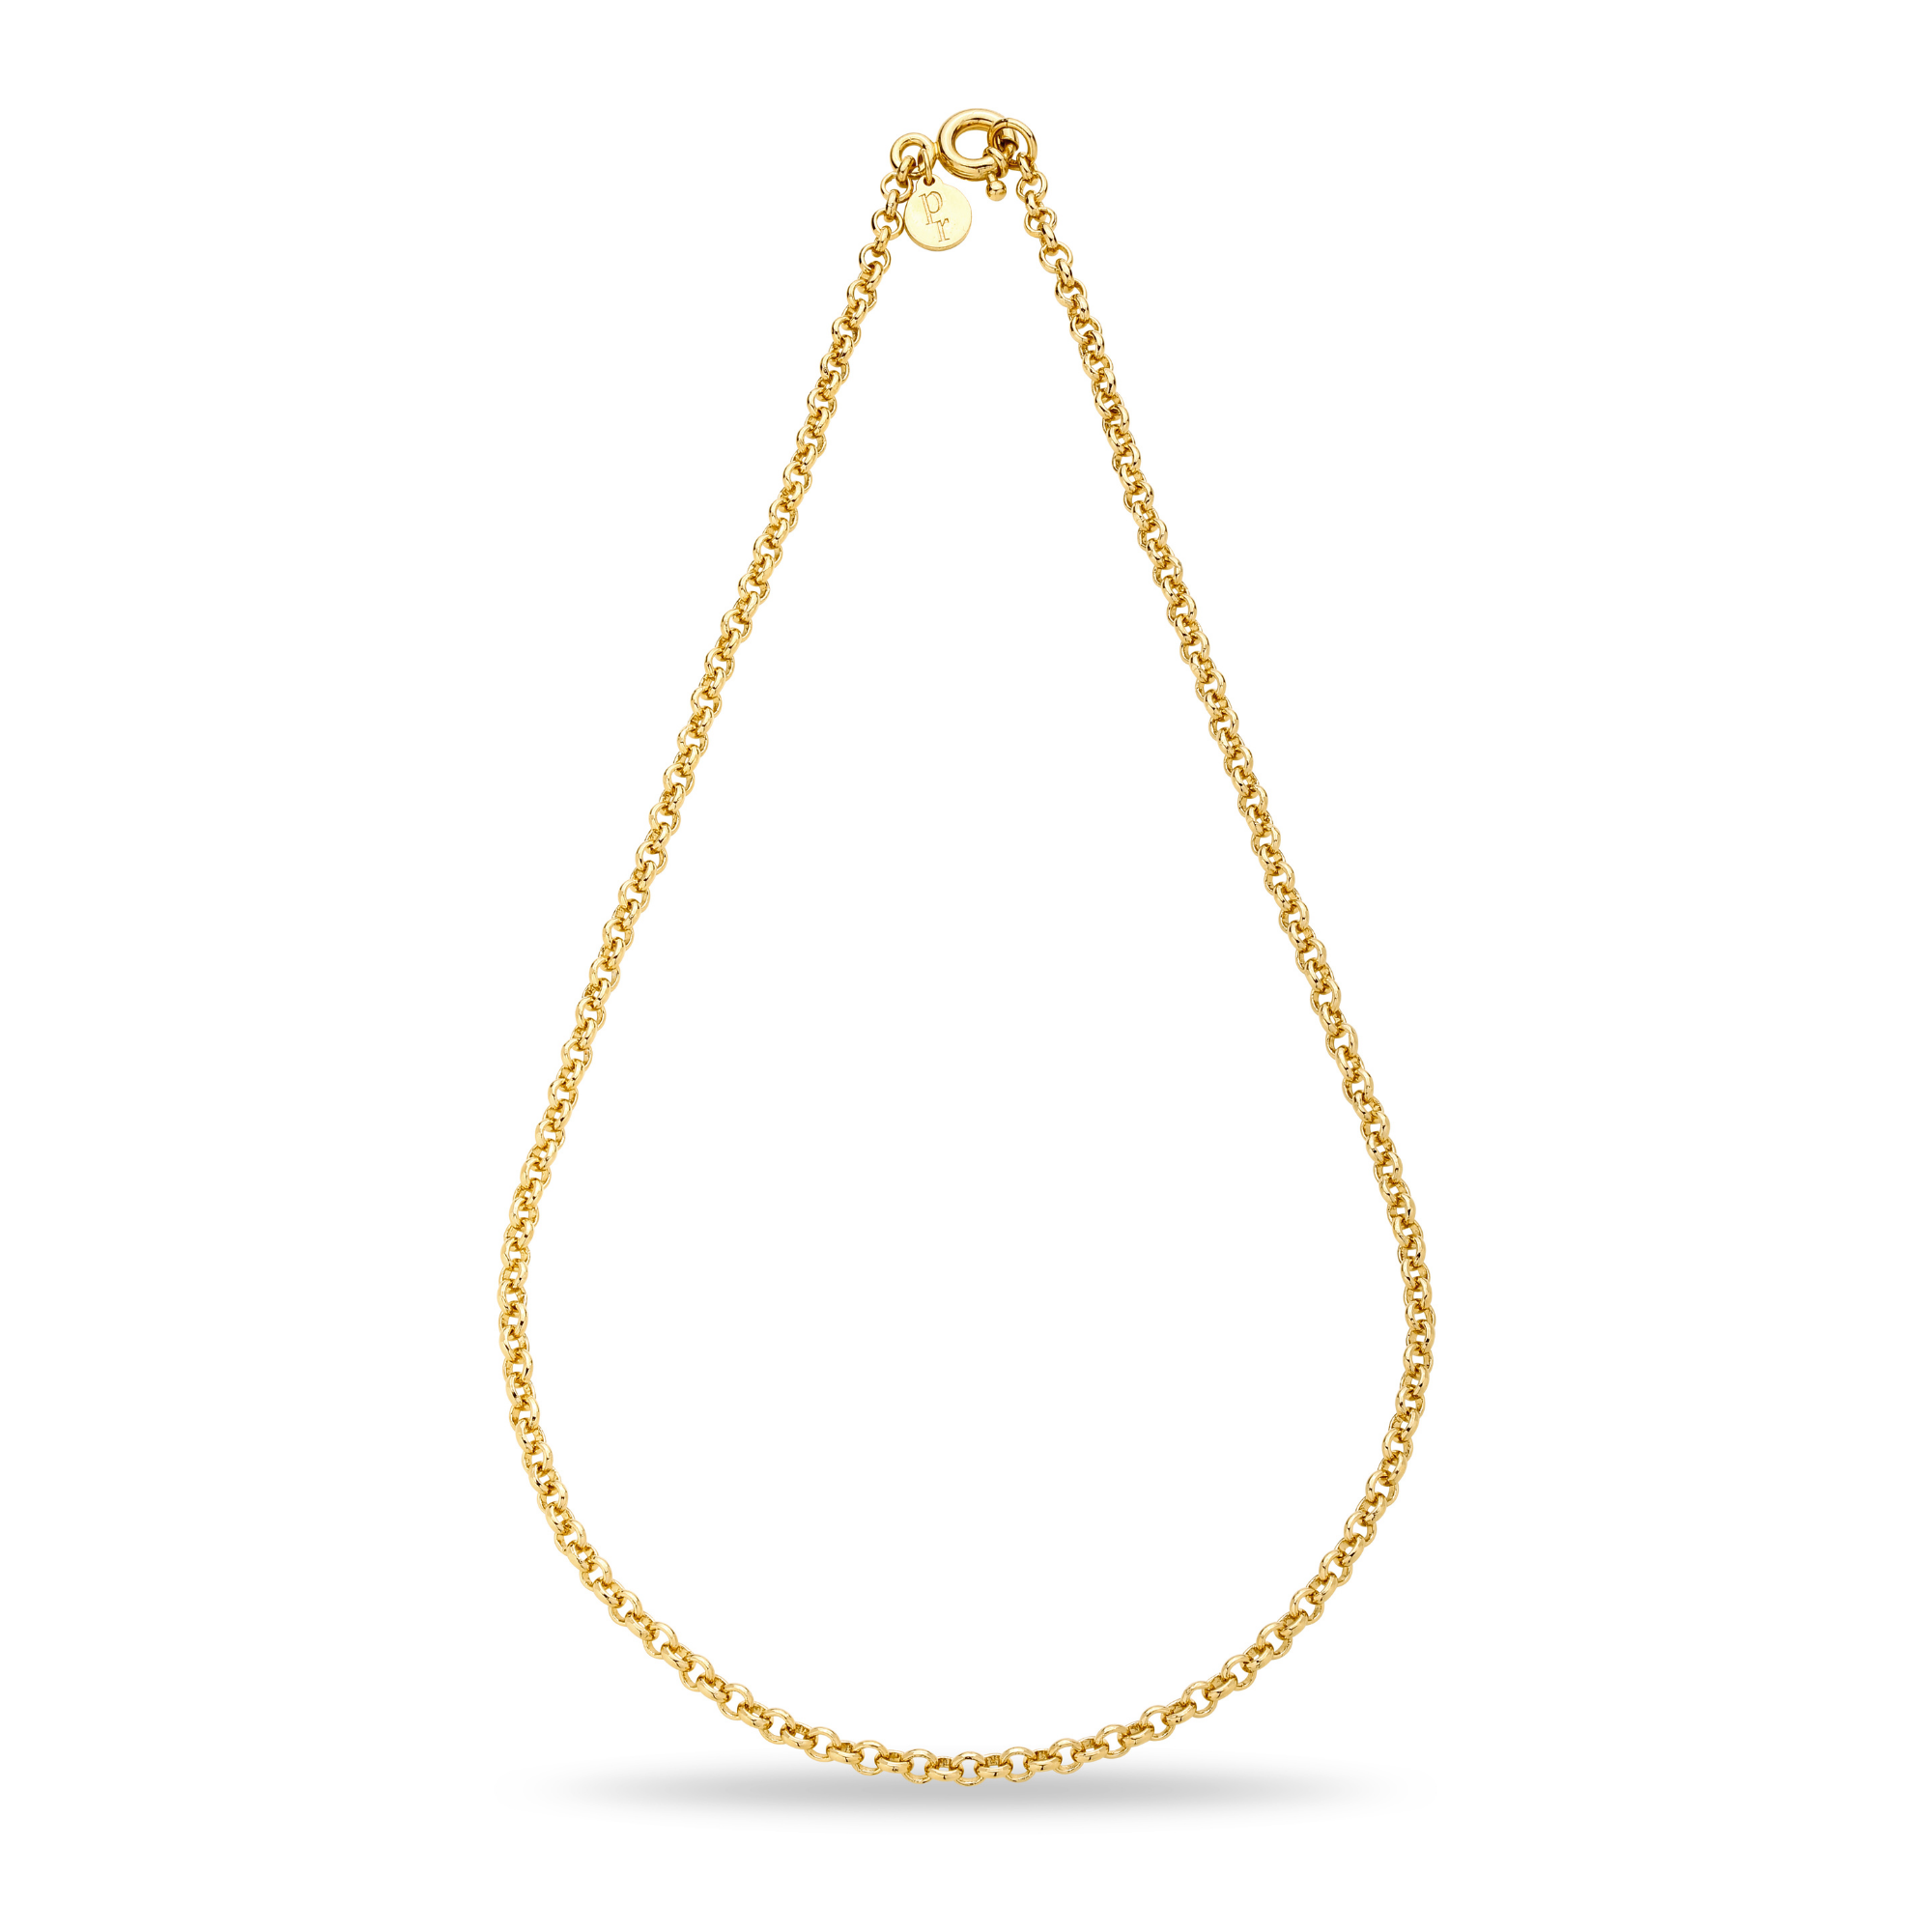 PATTY ROSE CHAIN No.9 NECKLACE